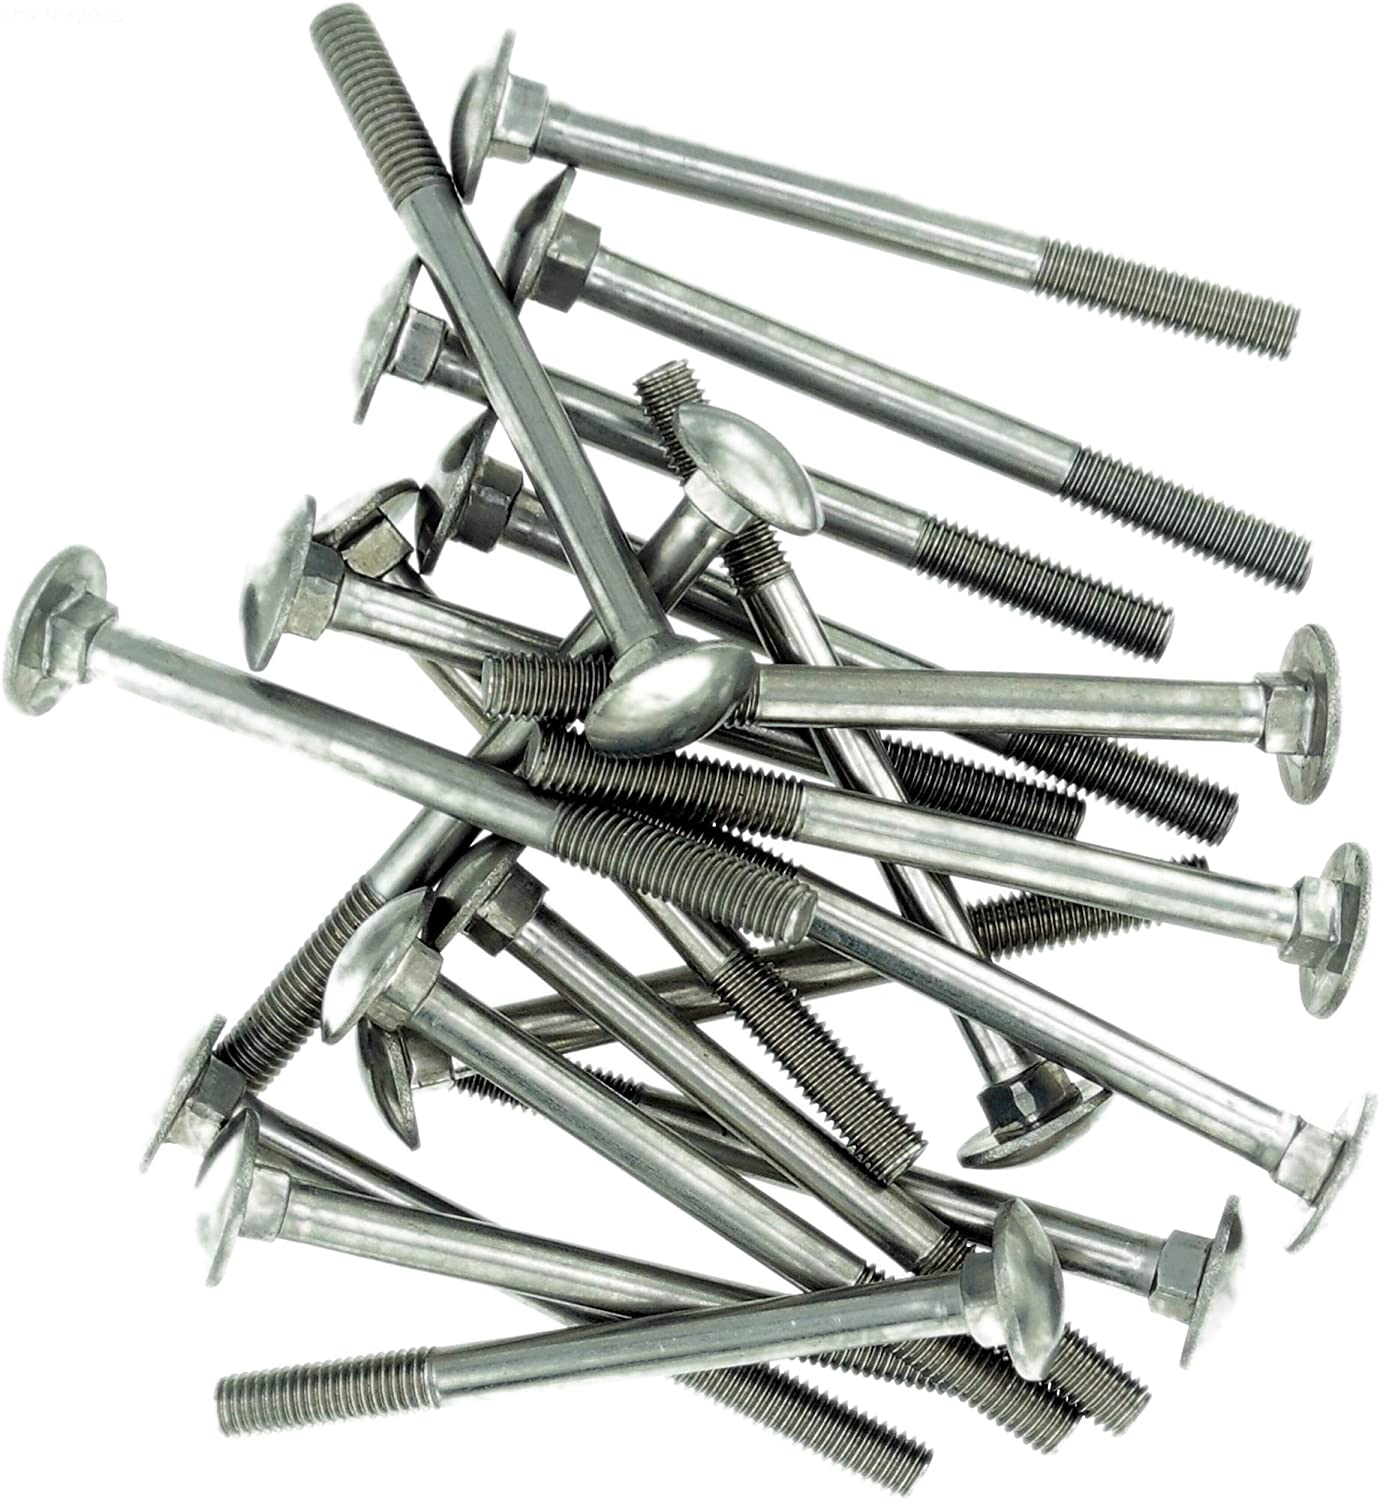 M5 Cup Square Carriage Bolt A2 Pack of 10 5mm x 30mm - Stainless Steel Partially Threaded